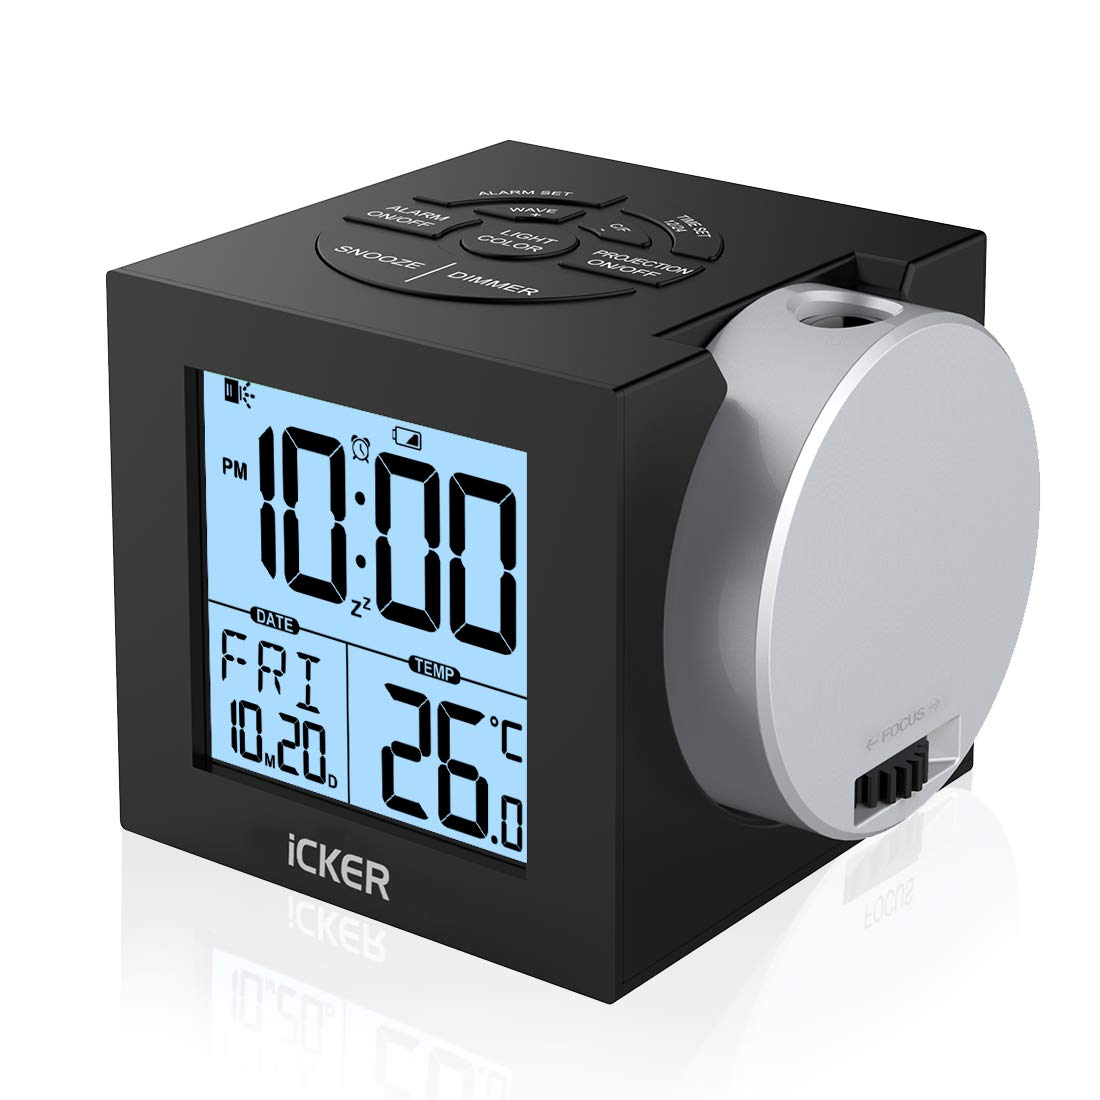 iCKER Projection Alarm Clock for Bedrooms, Digital Clock for Kids, 12/24 Hours, Indoor Temperature/Day/Date Display with Dimming, 7-Color Nightlight, Battery & DC Powered